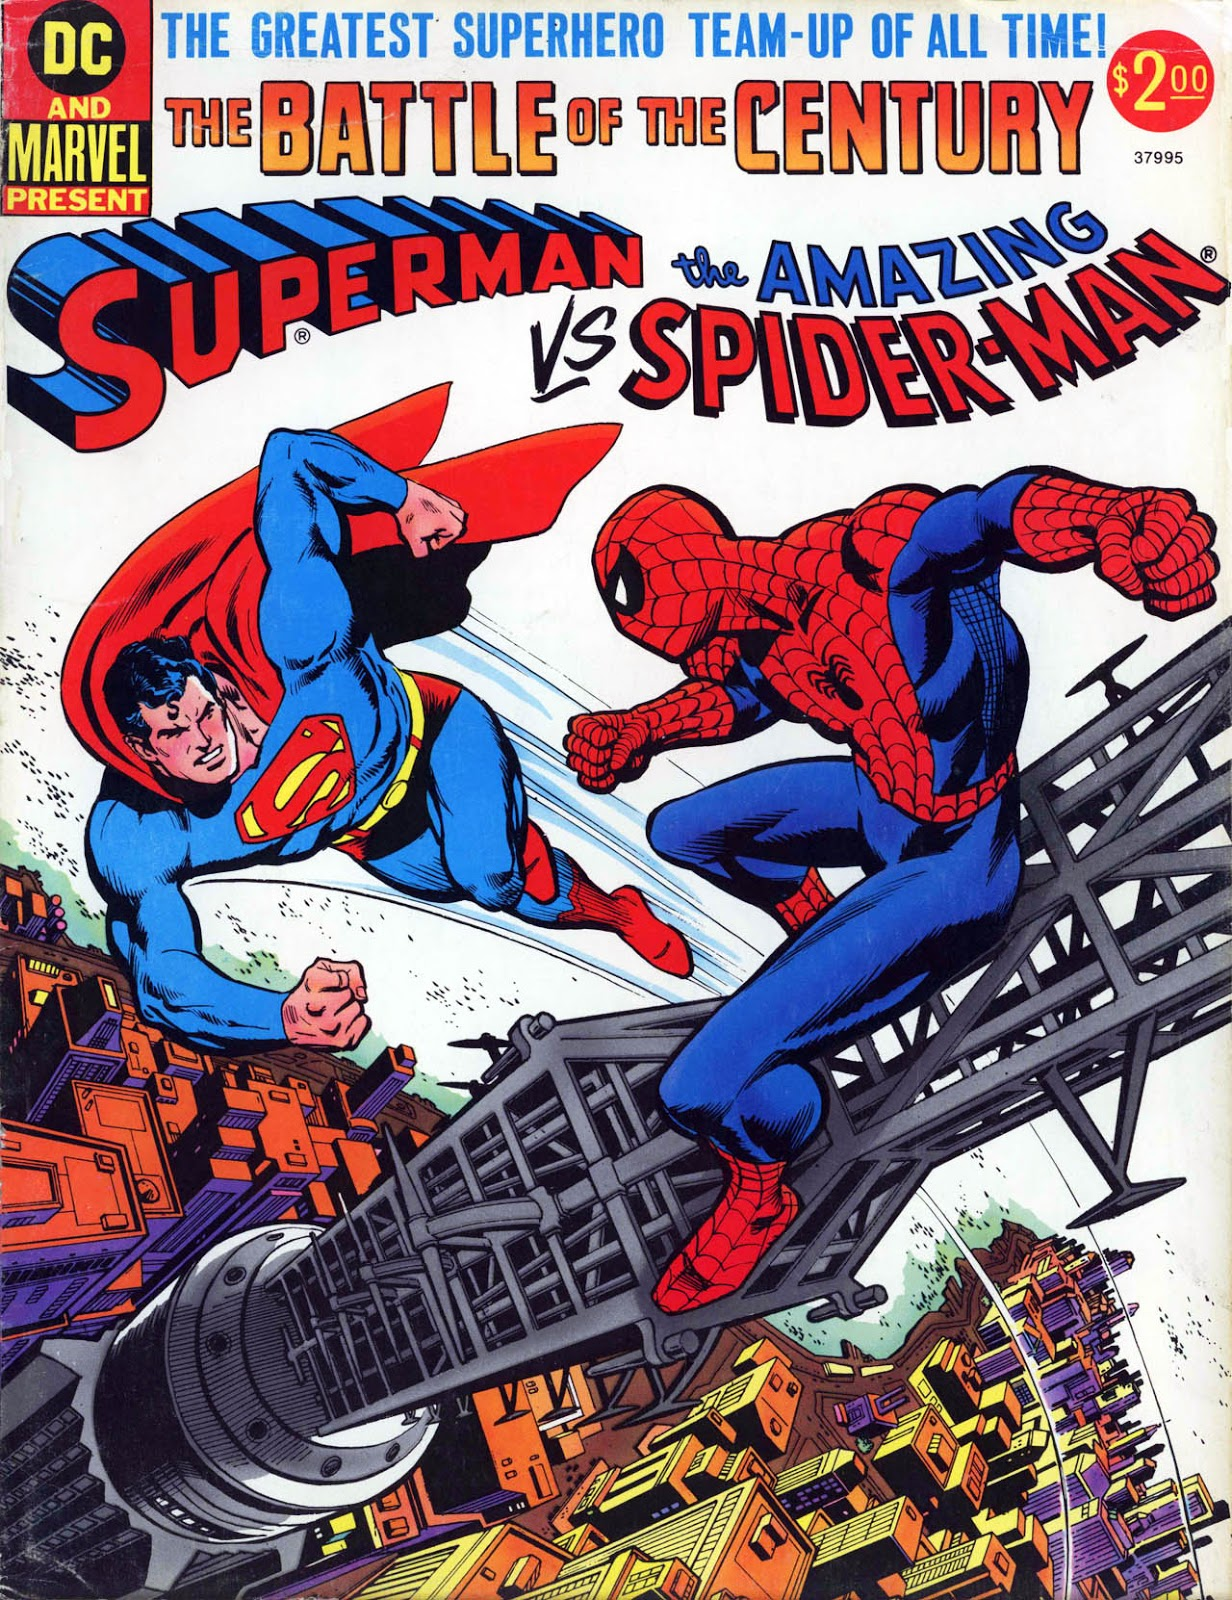 images.wikia.com/marvel_dc/images/0/09/Superman_vs_The_Amazing_Spider-Man_001.jpg